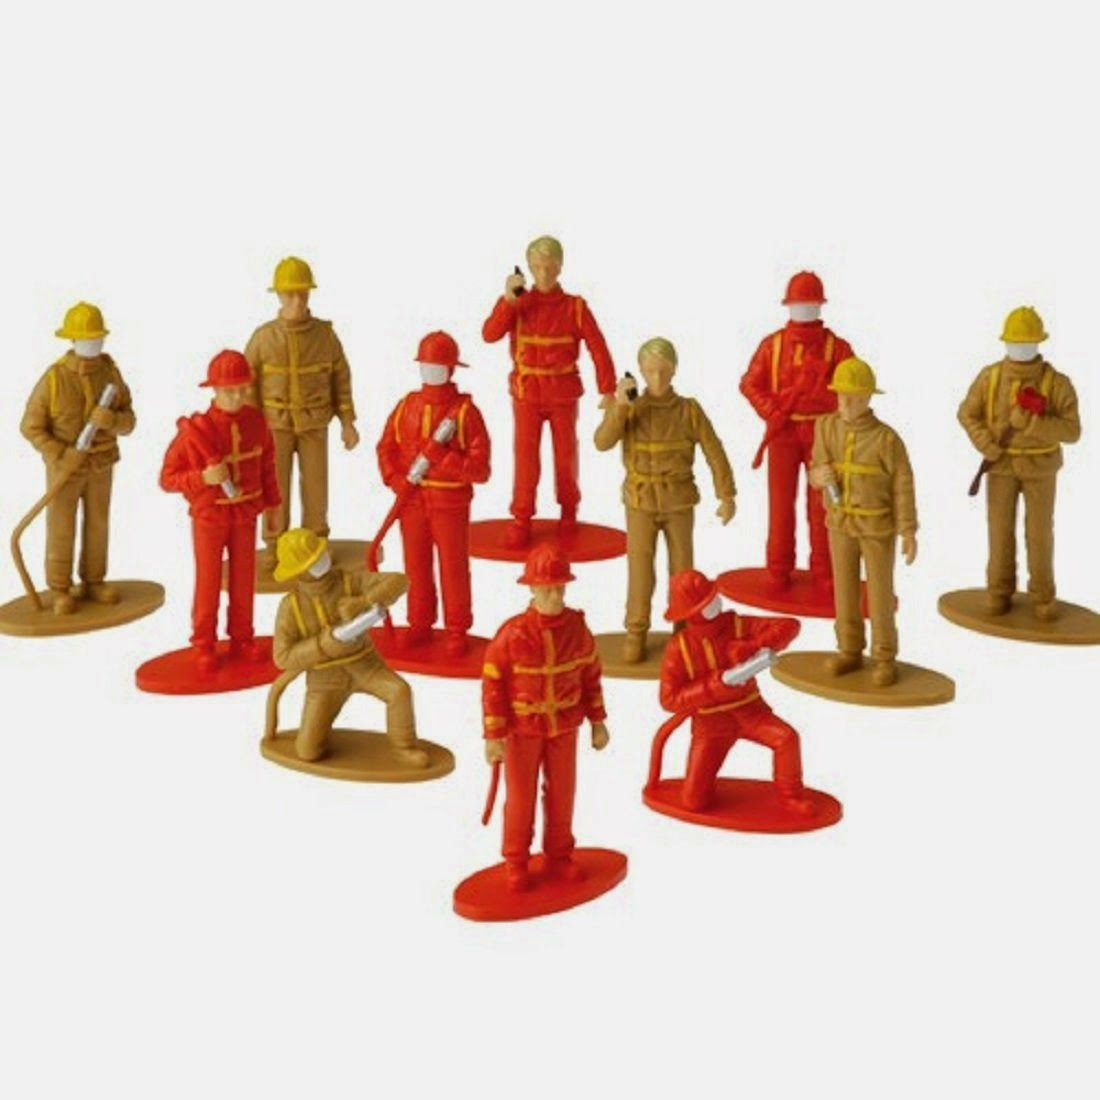 Firefighter Toy Figurines